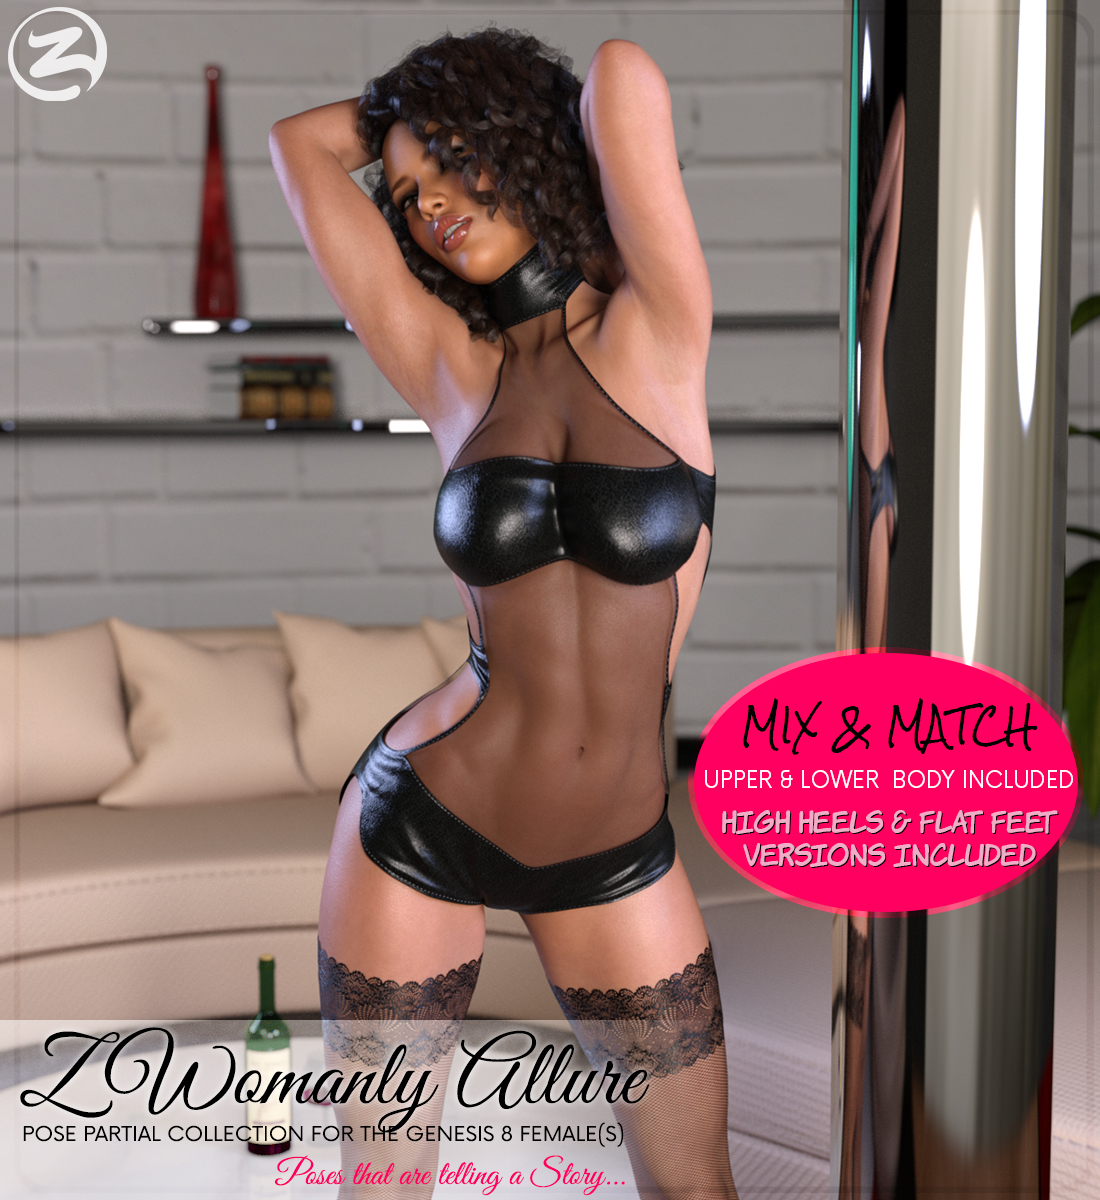 Z Womanly Allure - Poses and Partials for the Genesis 8 Females